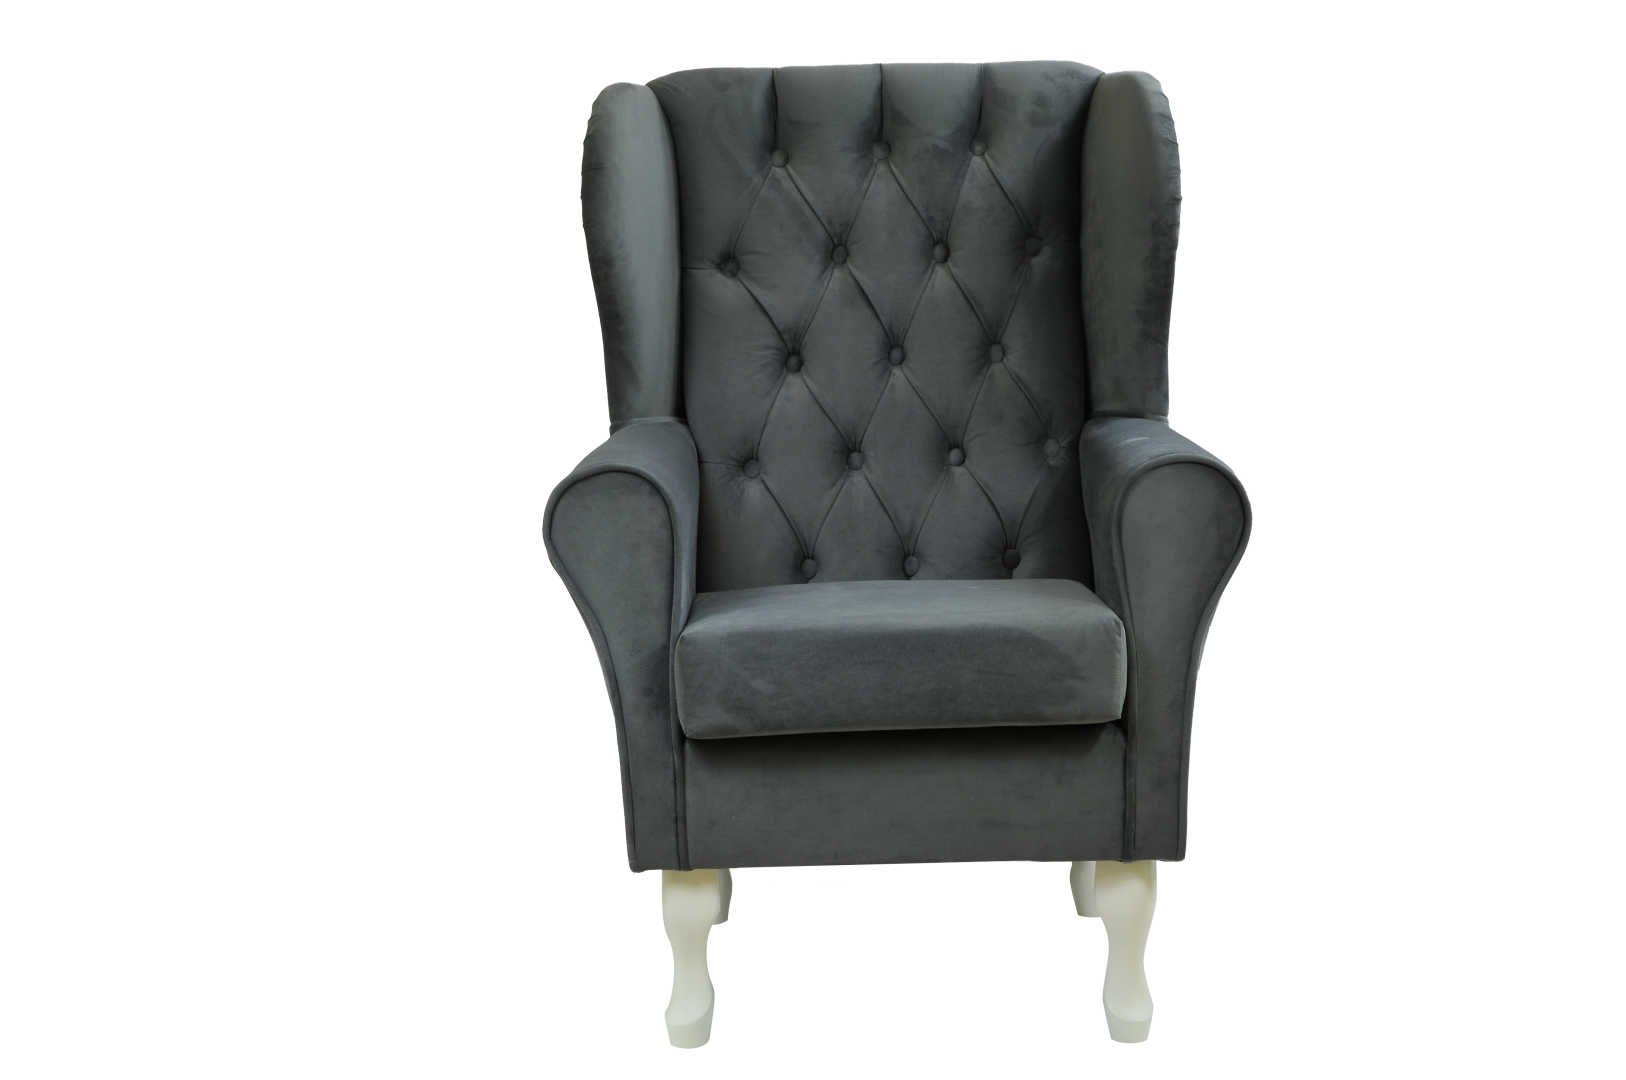 Chesterfield Sessel Grau Chesterfield Ohrensessel Grau